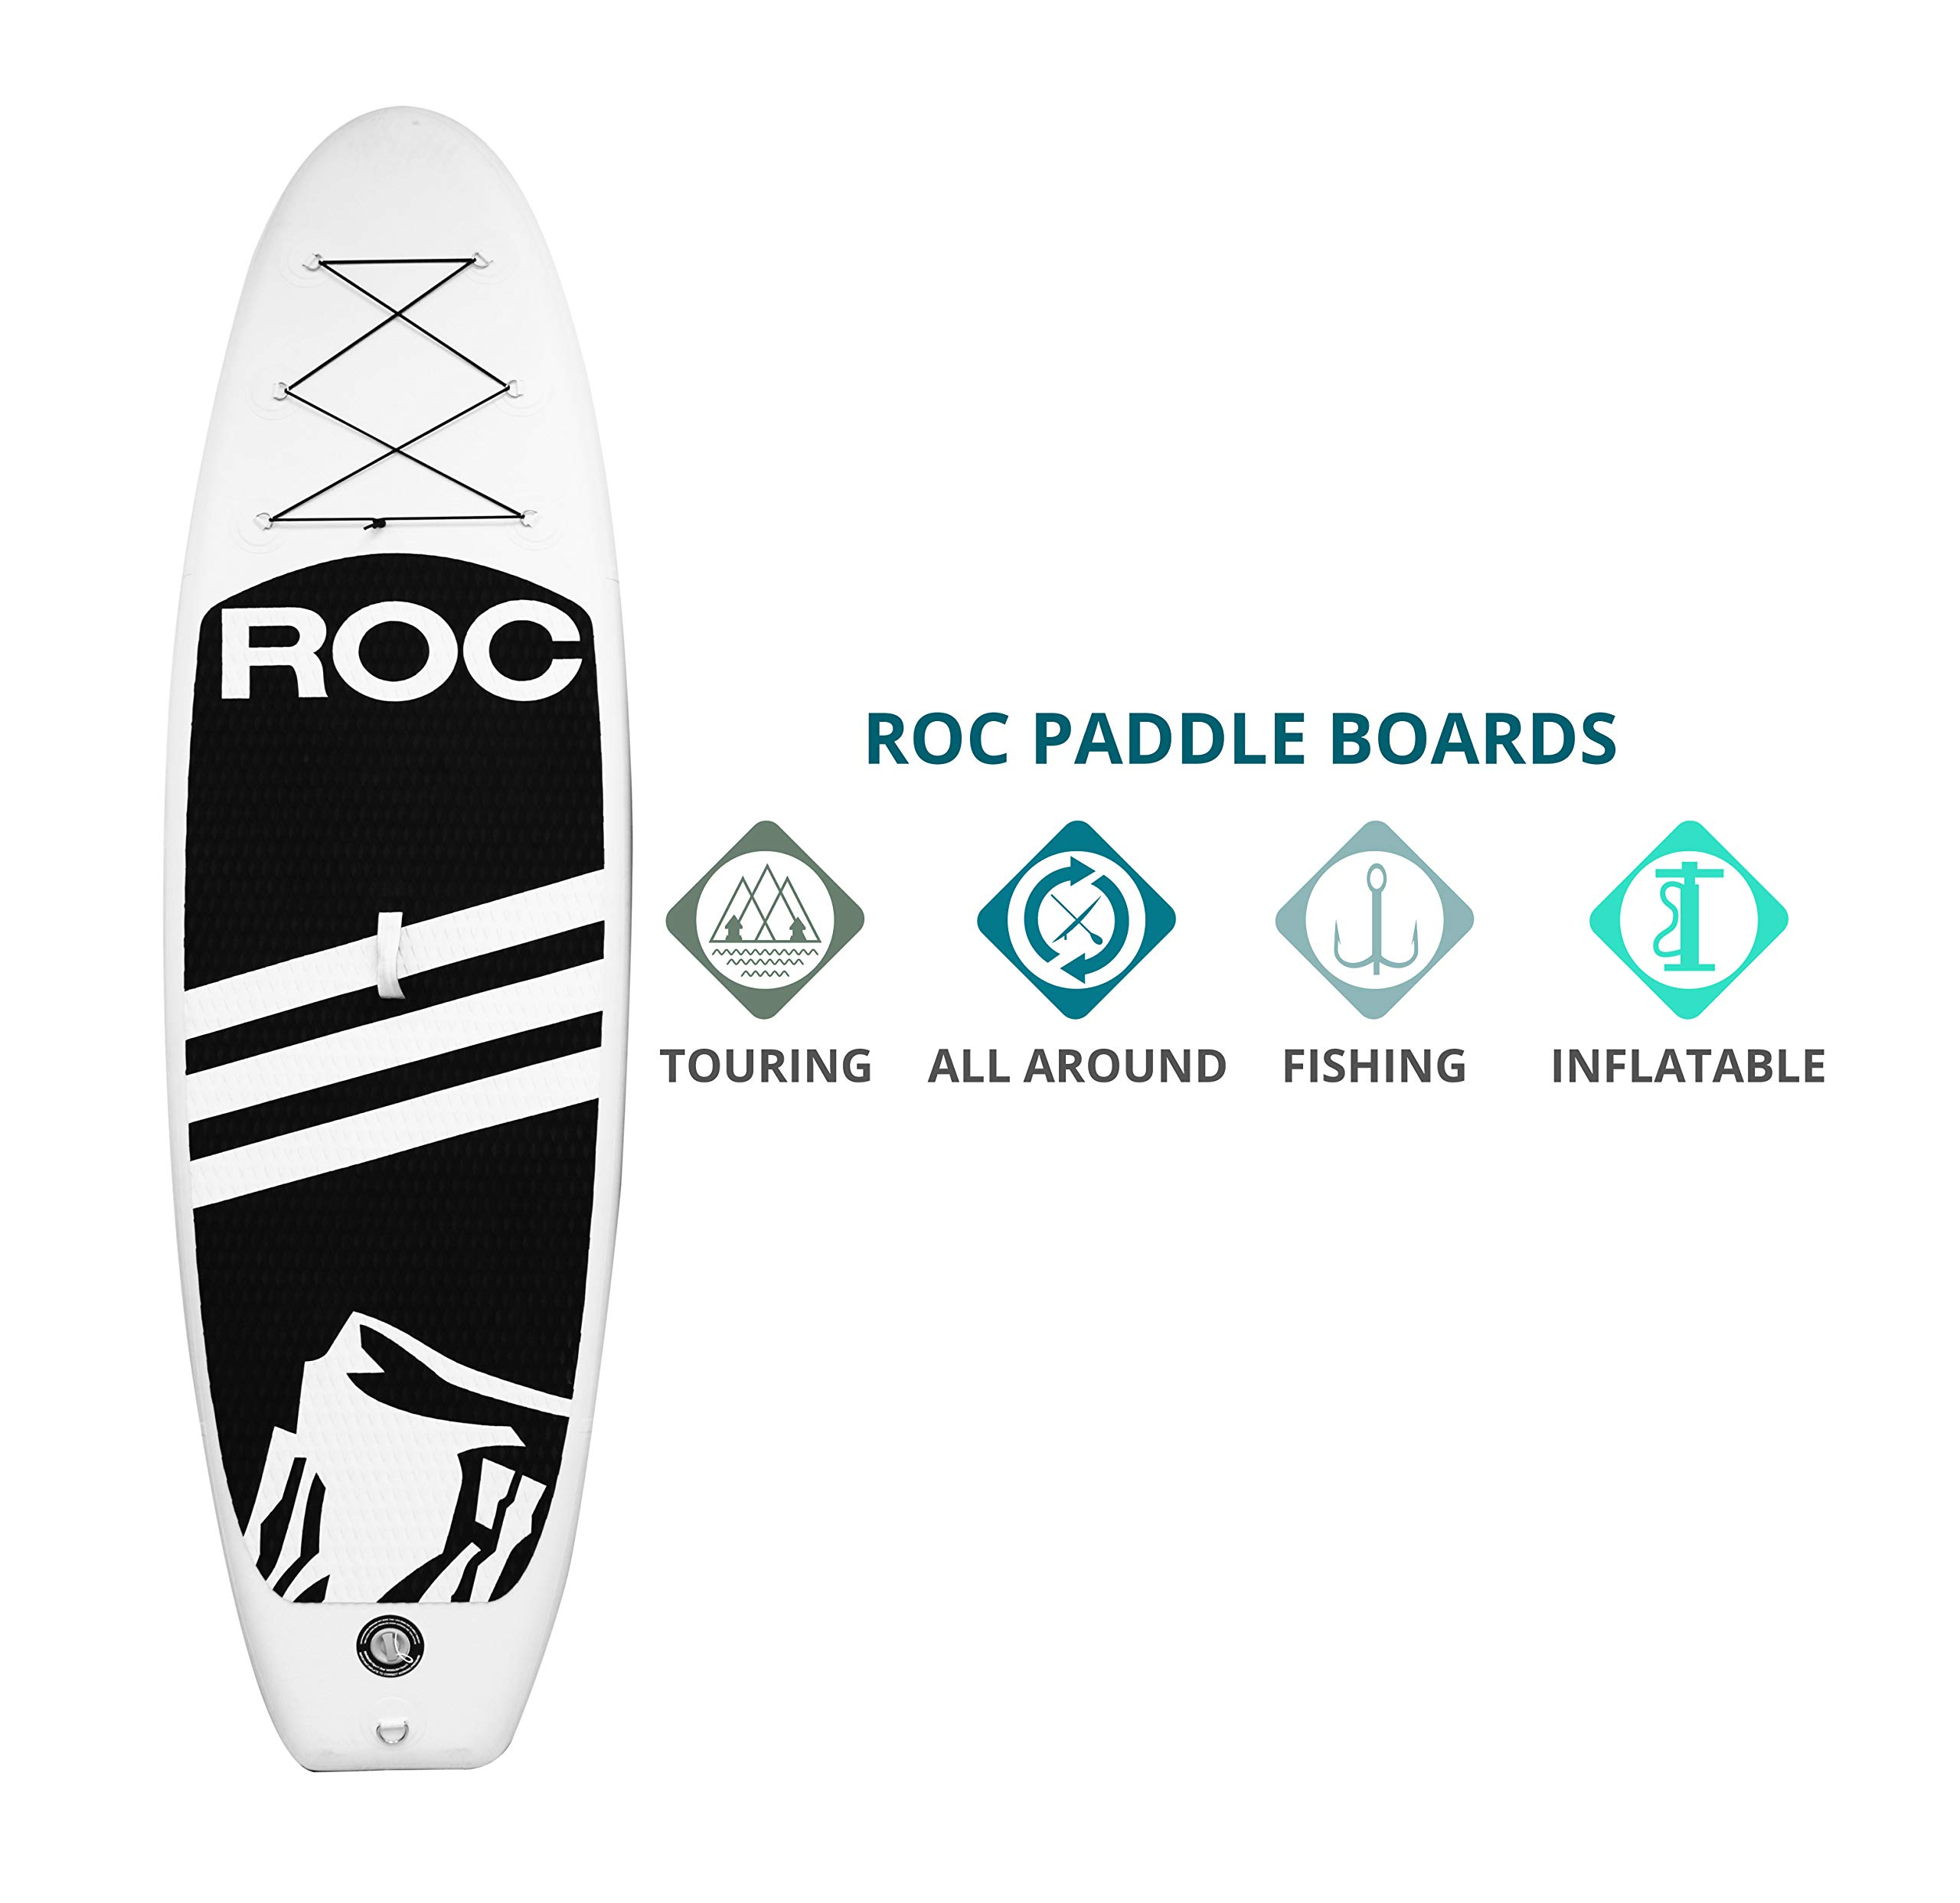 Paddle and Hand Pump Youth /& Adult Leash Non-Slip Deck Bonus Waterproof Bag Roc Inflatable Stand Up Paddle Boards W Free Premium SUP Accessories /& Backpack